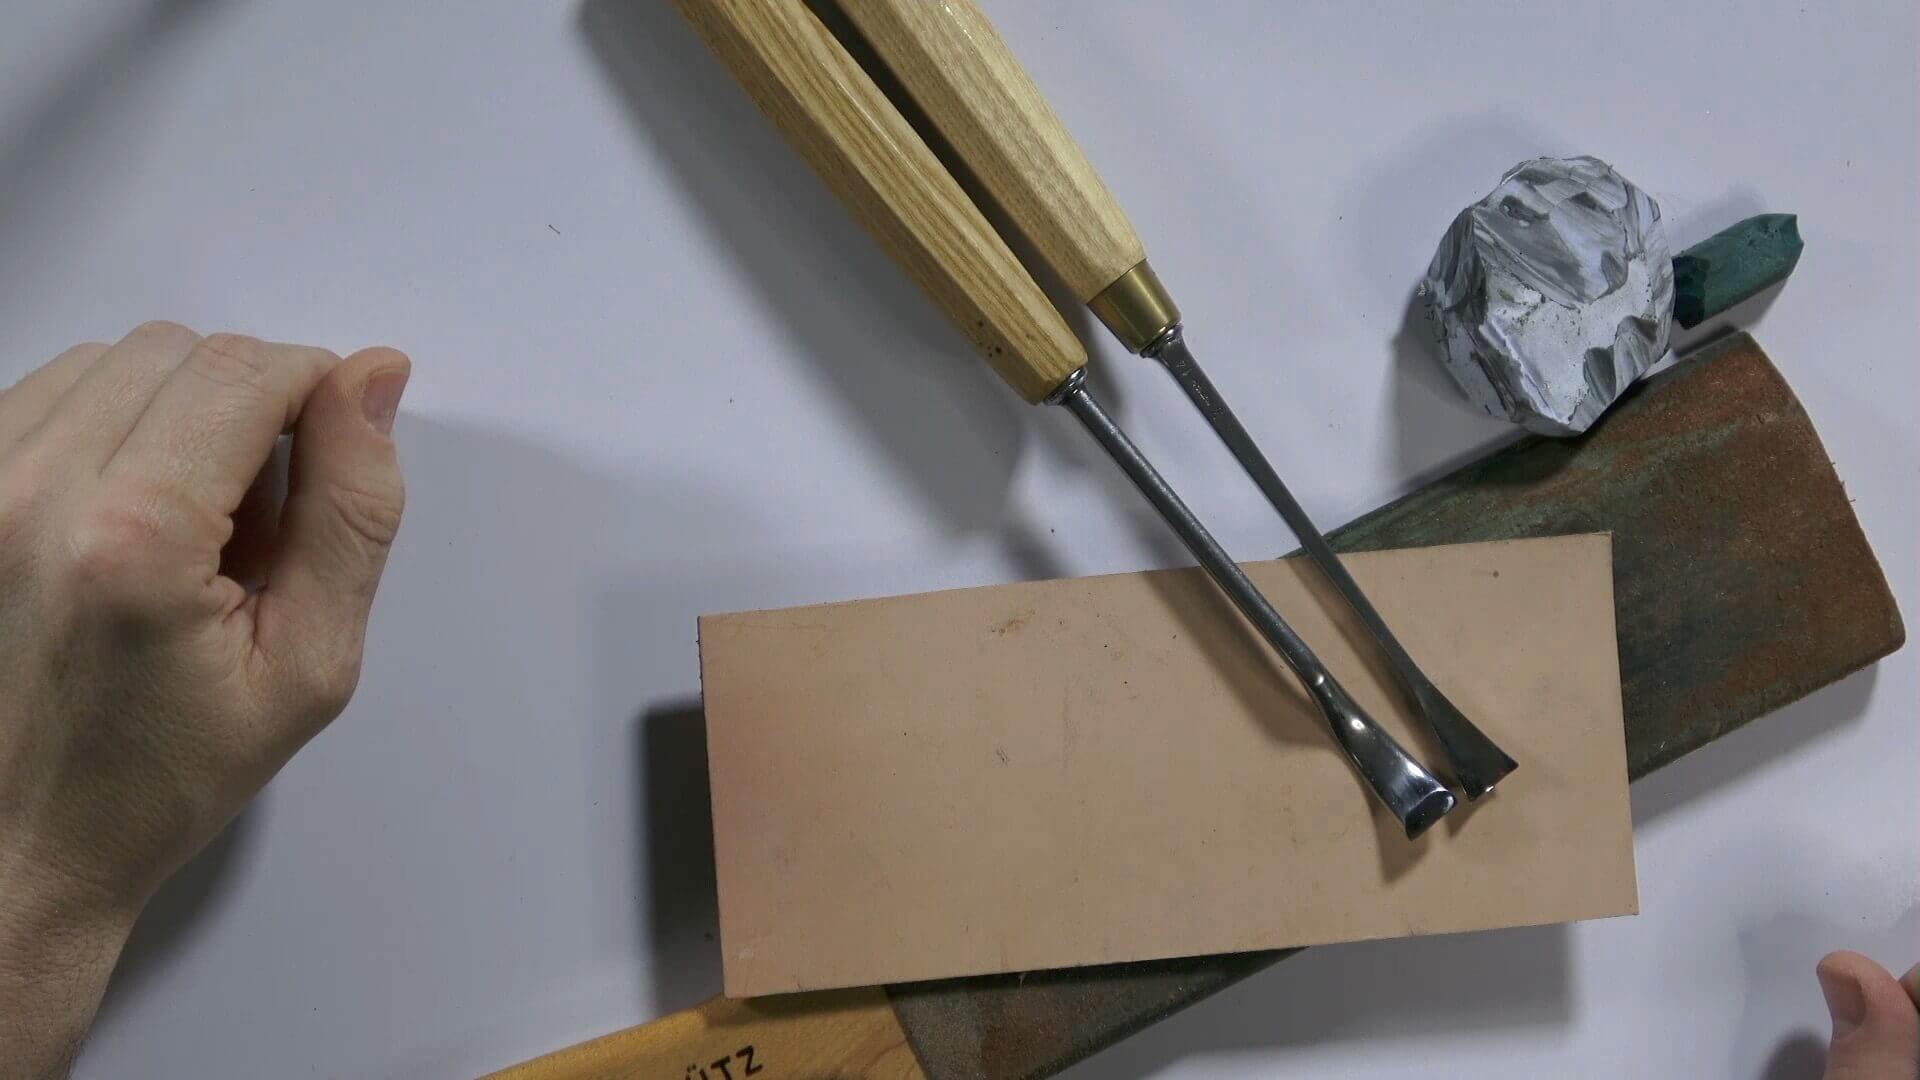 Best Strop & Compound For A Mirror Polish Edge?,strop,leather strop,stropping,how to make a strop,knife strop,how to make a stropping block,how to strop a knife,diy strop,make a leather strop,strop compound,how to make a leather strop,diy leather strop,sharpening,carving tools,stropping a knife,knife sharpening,sharpening wood carving tools,stropping wood carving tools,Best Strop and Compound,BEST STROP AND COMPOUND,Stropping carving tools,honing a knife